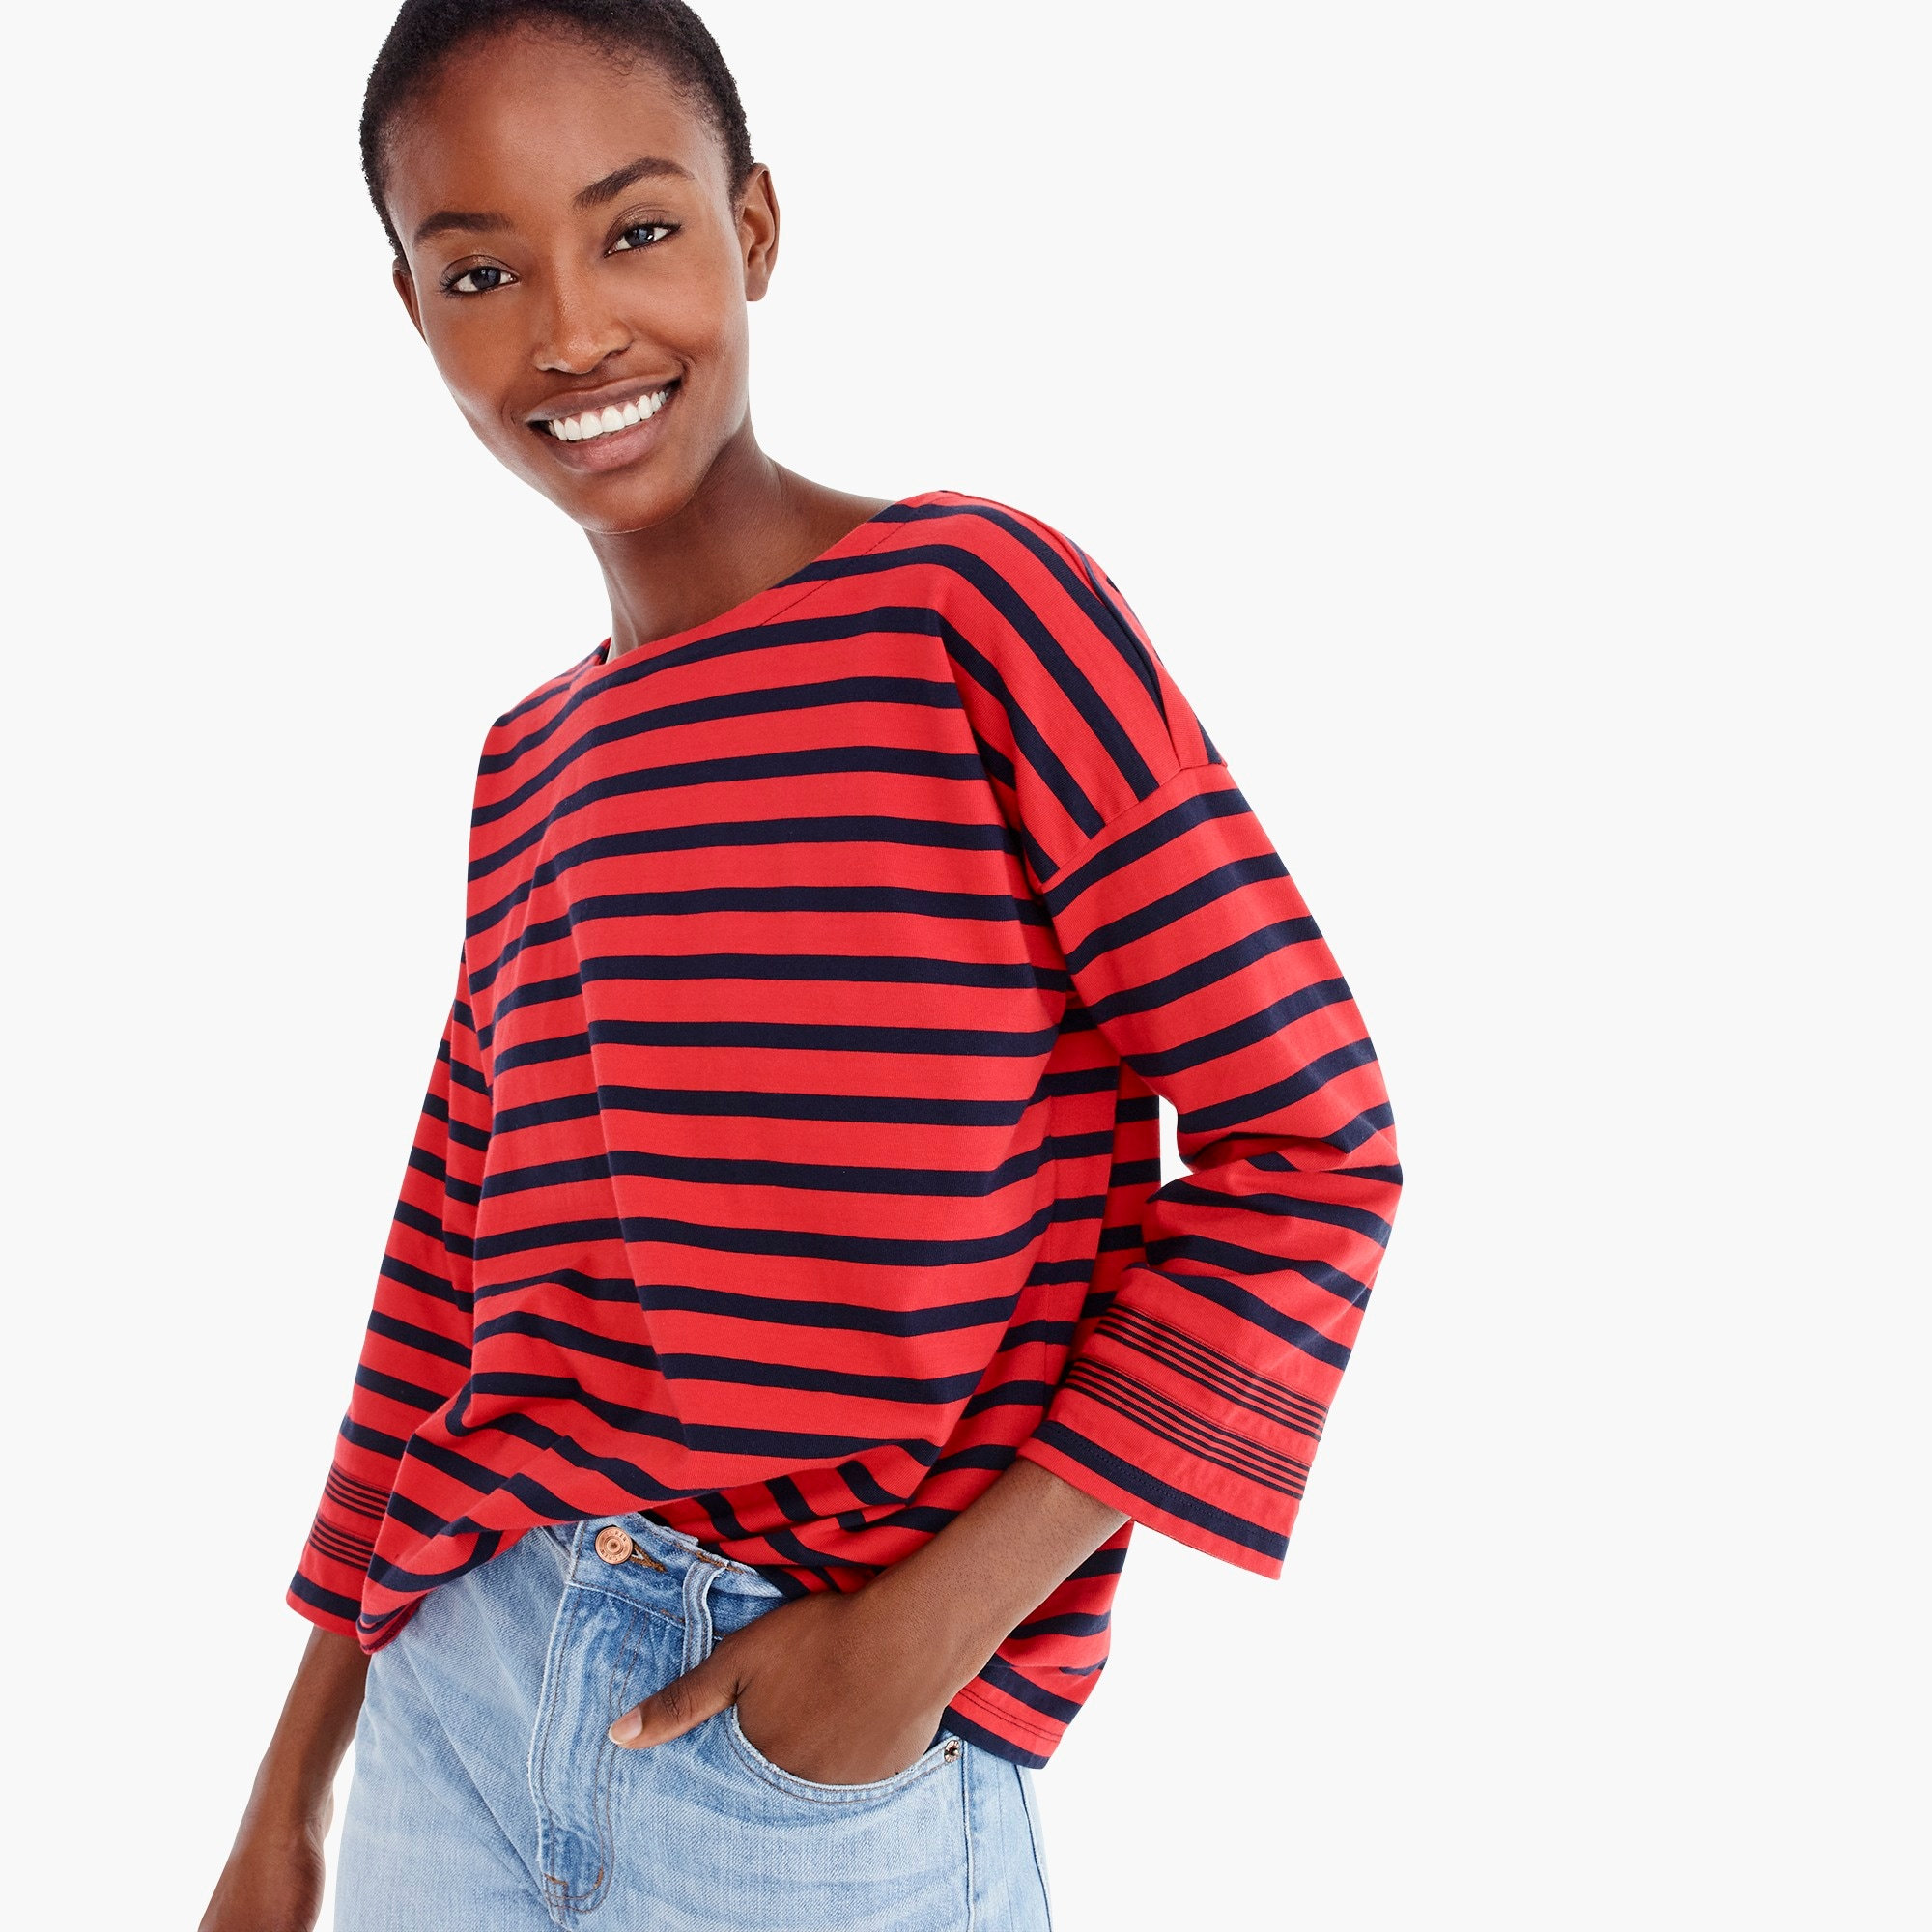 womens Striped T-shirt with grosgrain trim